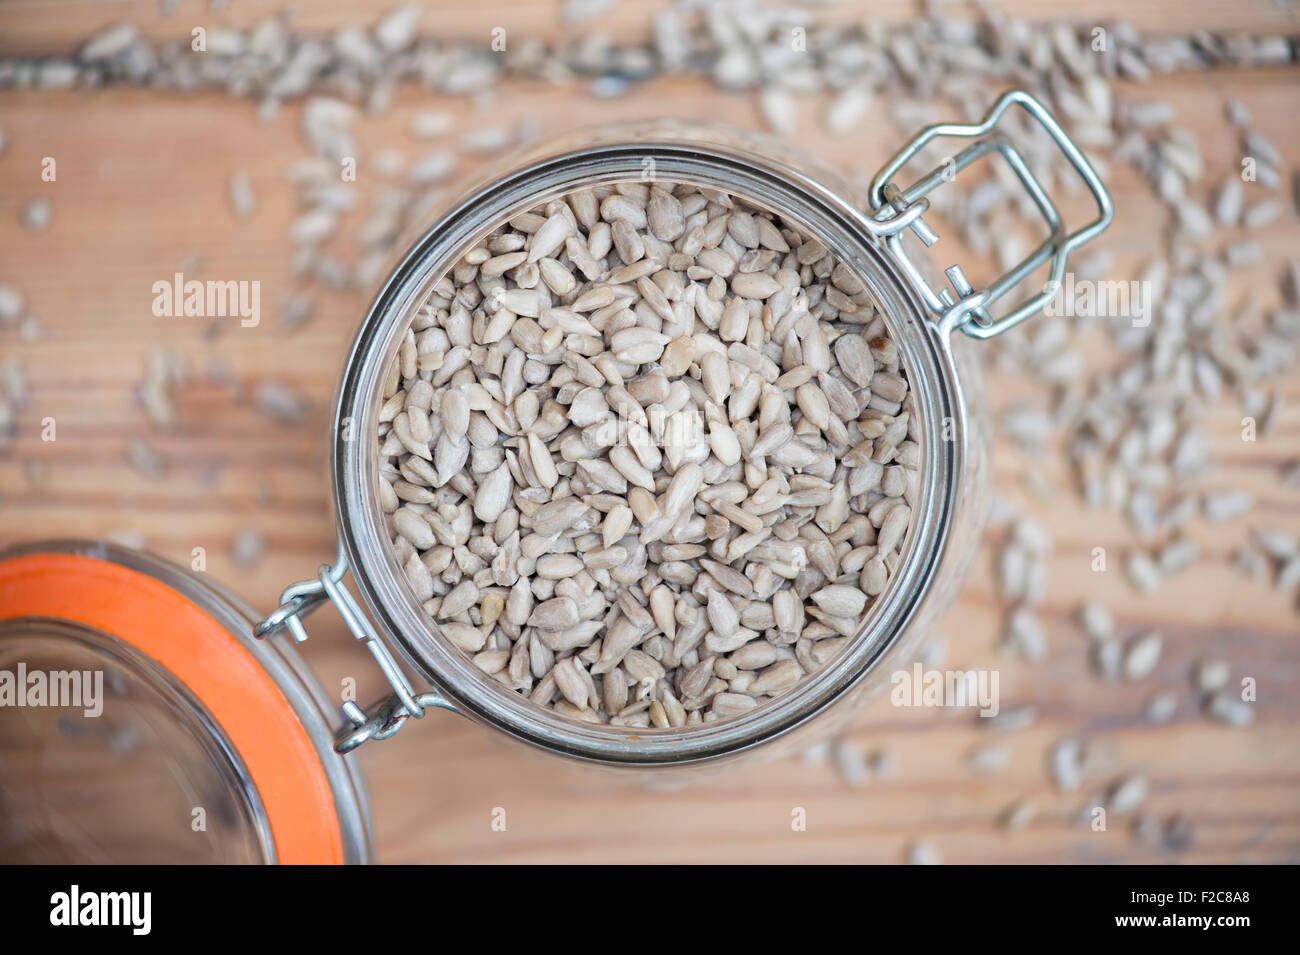 Helianthus annus. Sunflower seeds in a kilner storage jar - Stock Image